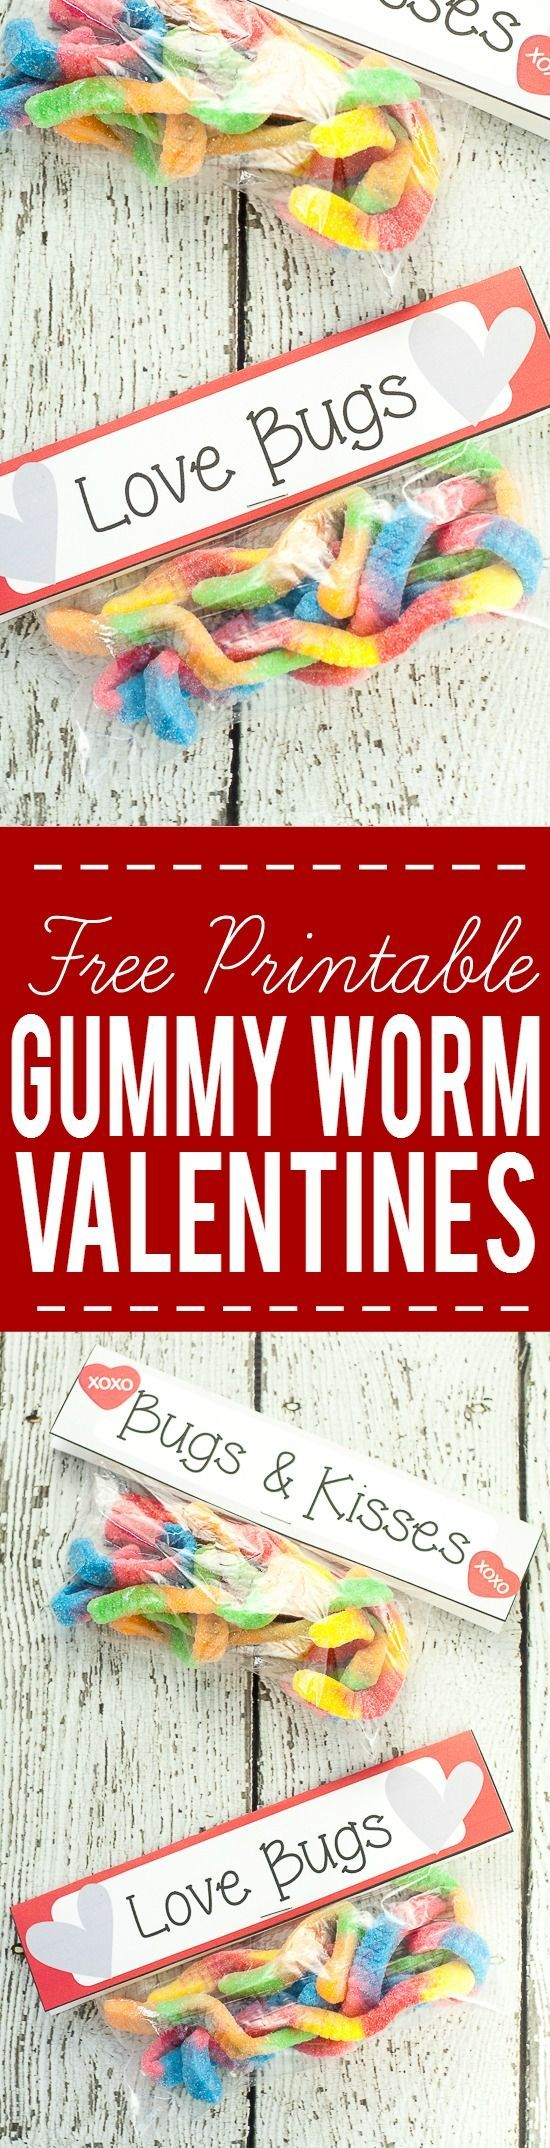 Free Printable Gummy Worm Valentines for kids